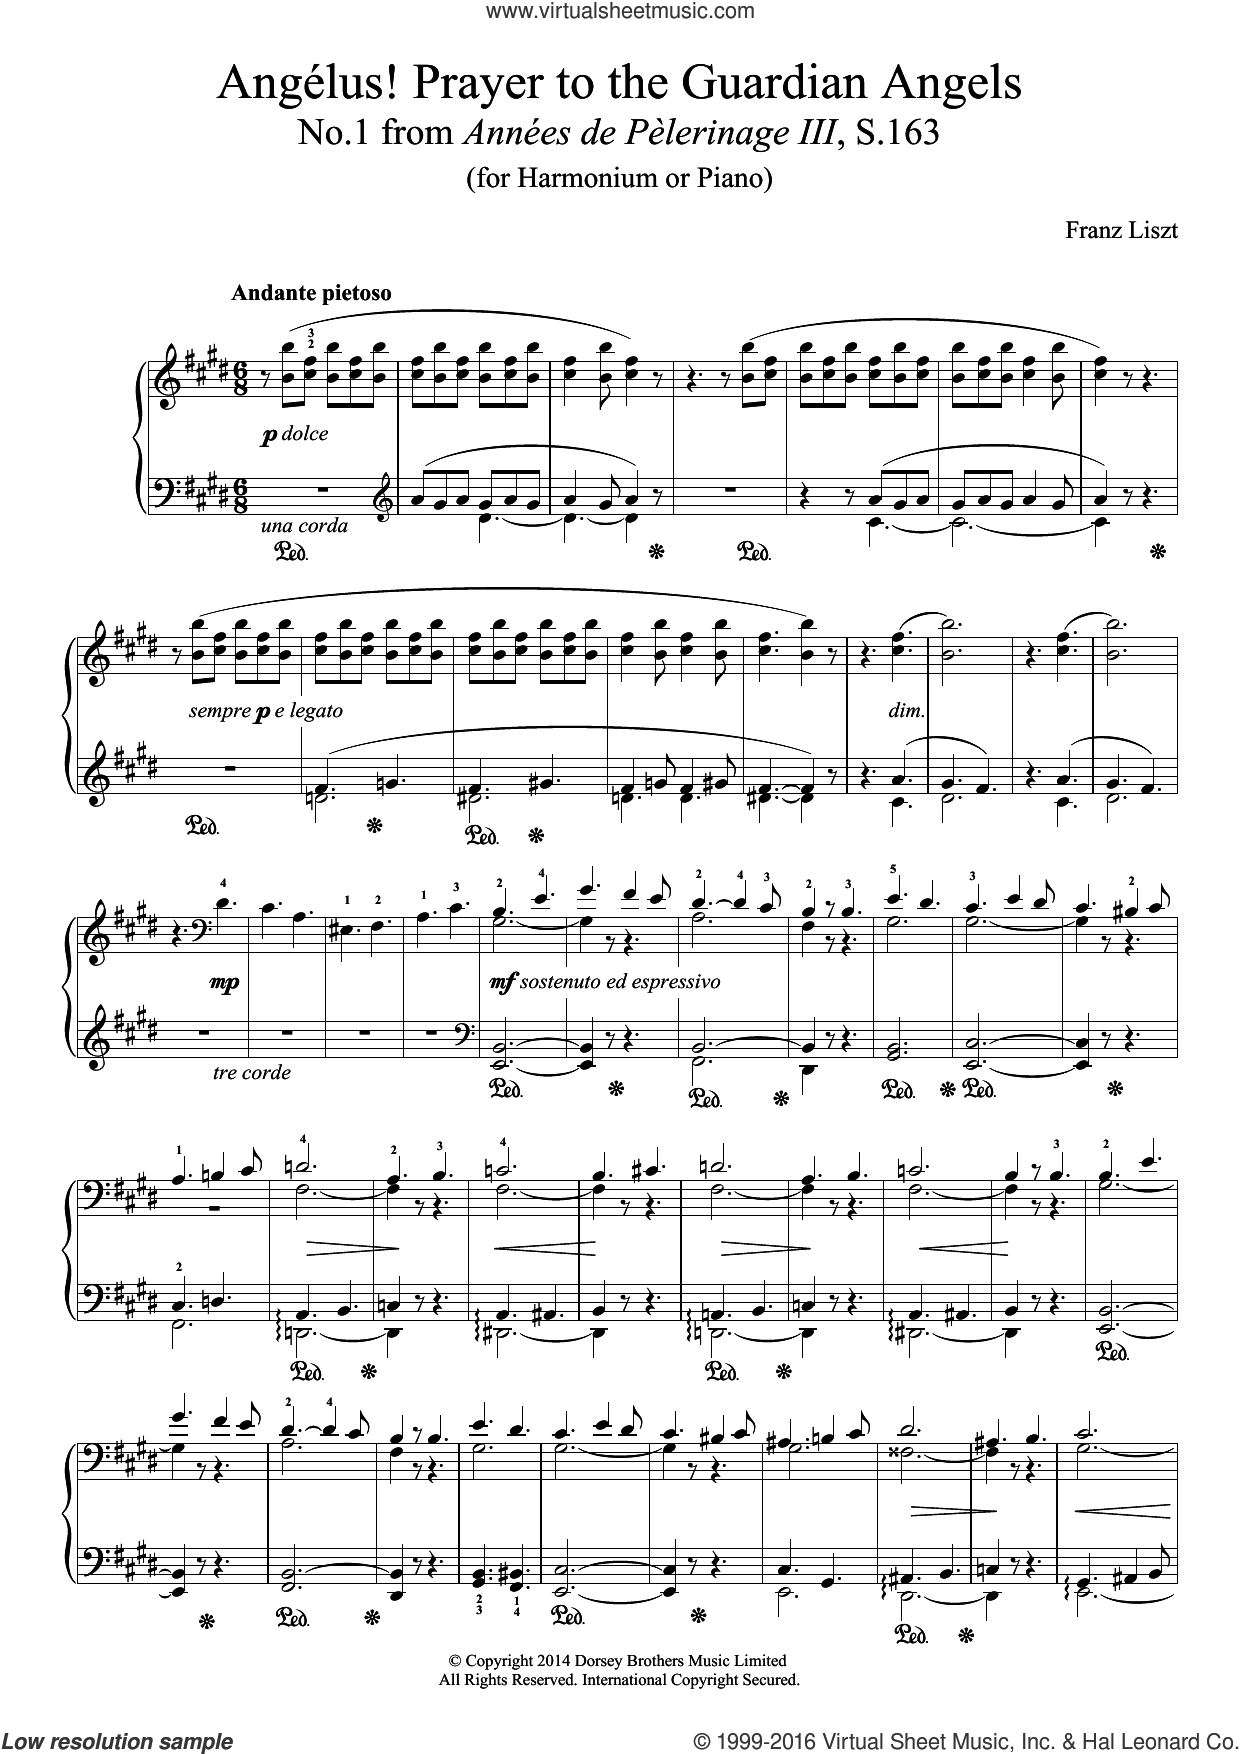 Annees De Pelerinage III, No.1: Angelus! Prayer To The Guardian Angels sheet music for piano solo by Franz Liszt, classical score, intermediate. Score Image Preview.